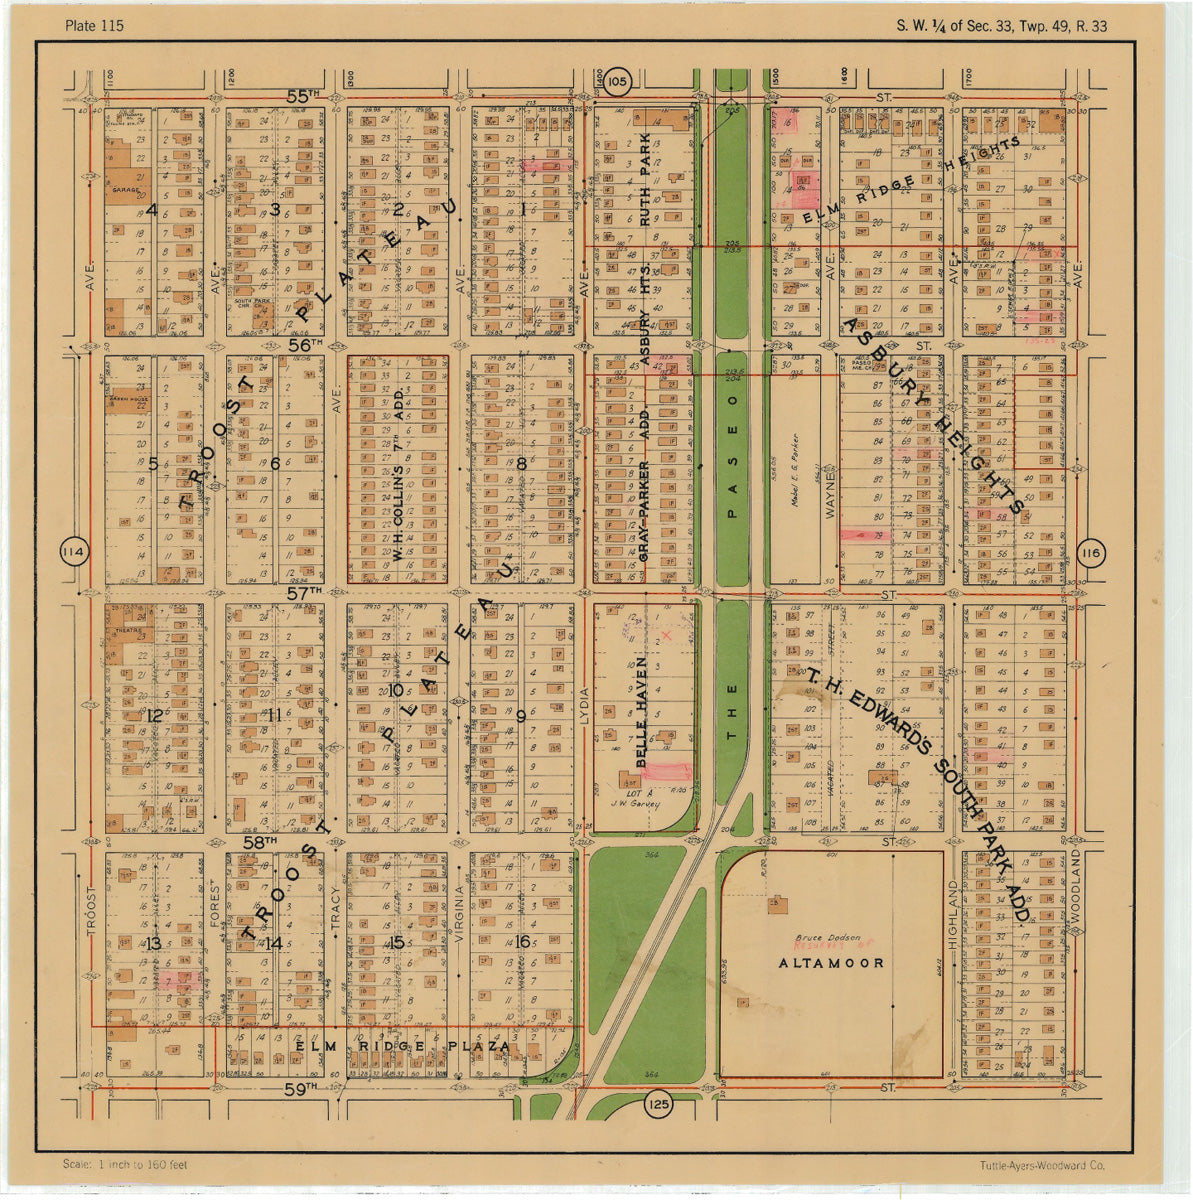 Kansas City 1925 Neighborhood Map - Plate #115 55th-59th Troost-Woodland